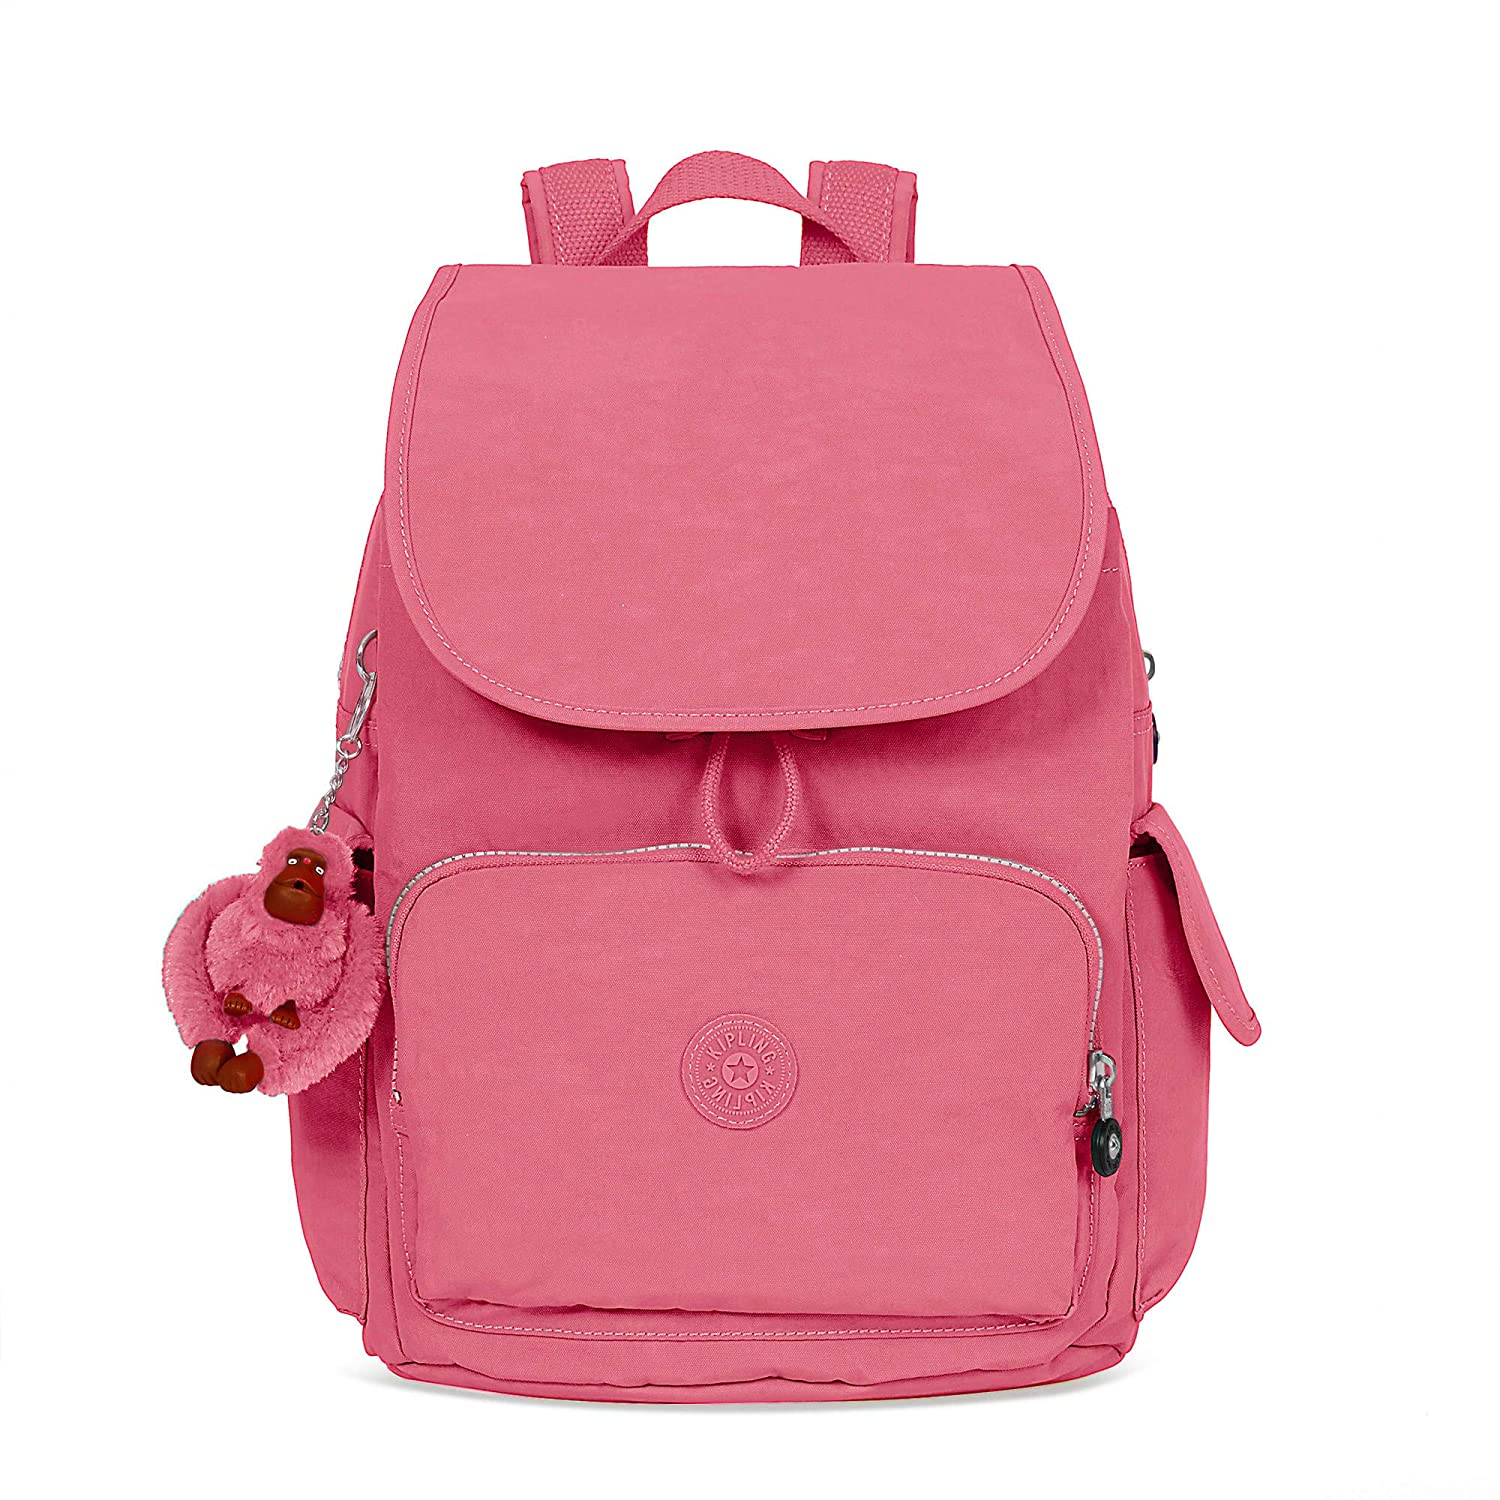 c16ae08a5747 Amazon.com: Kipling City Pack Backpack One Size Desert Rose: Shoes